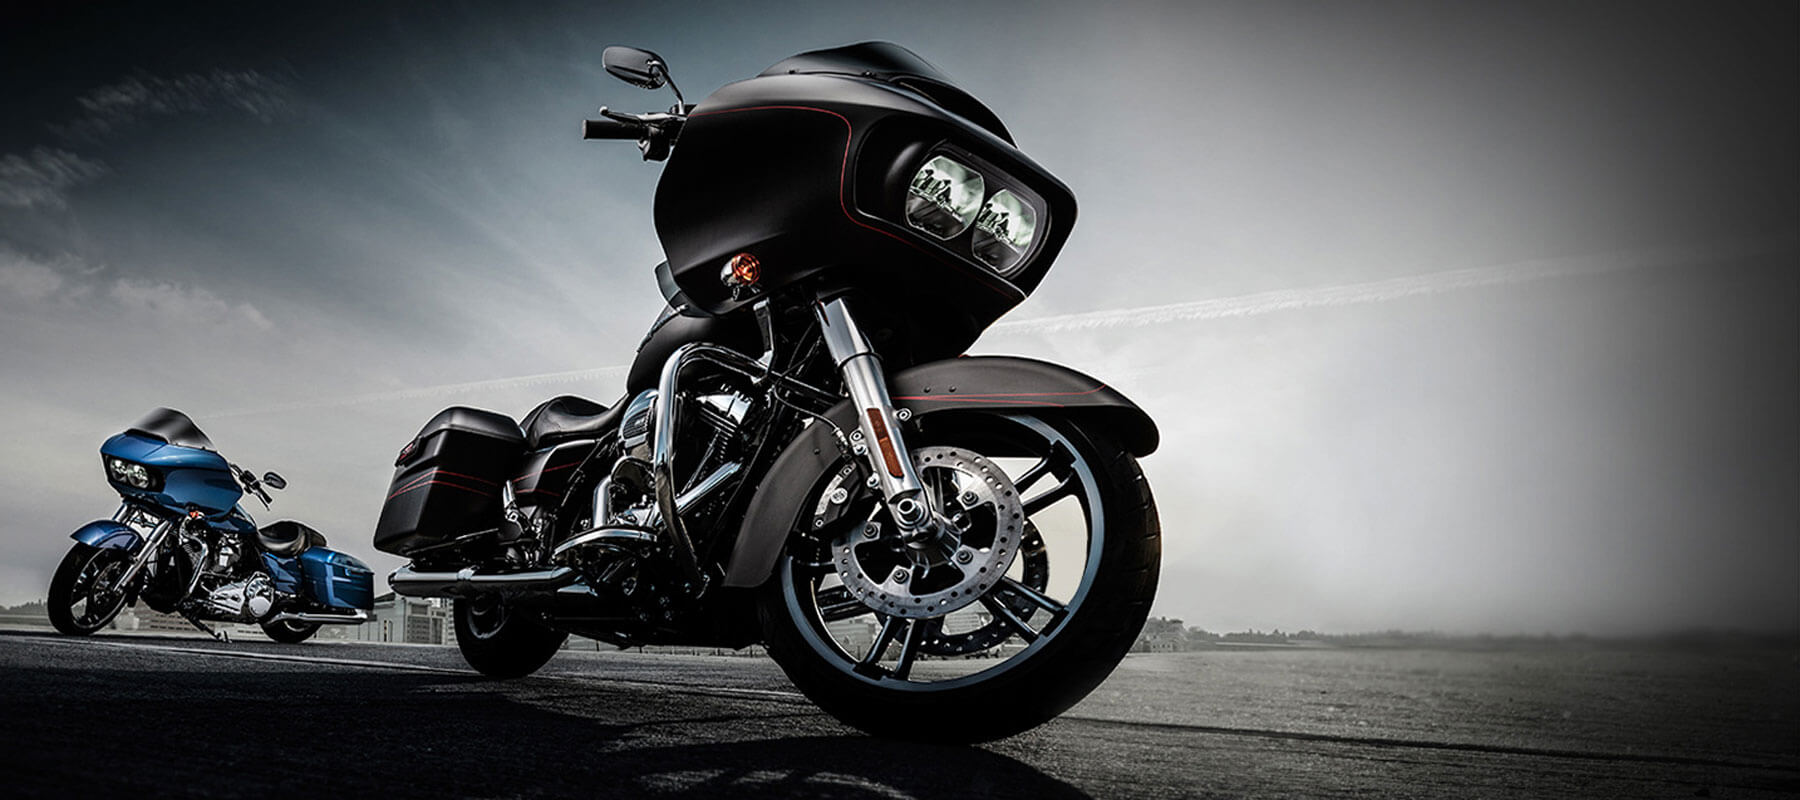 Road Glide Special background